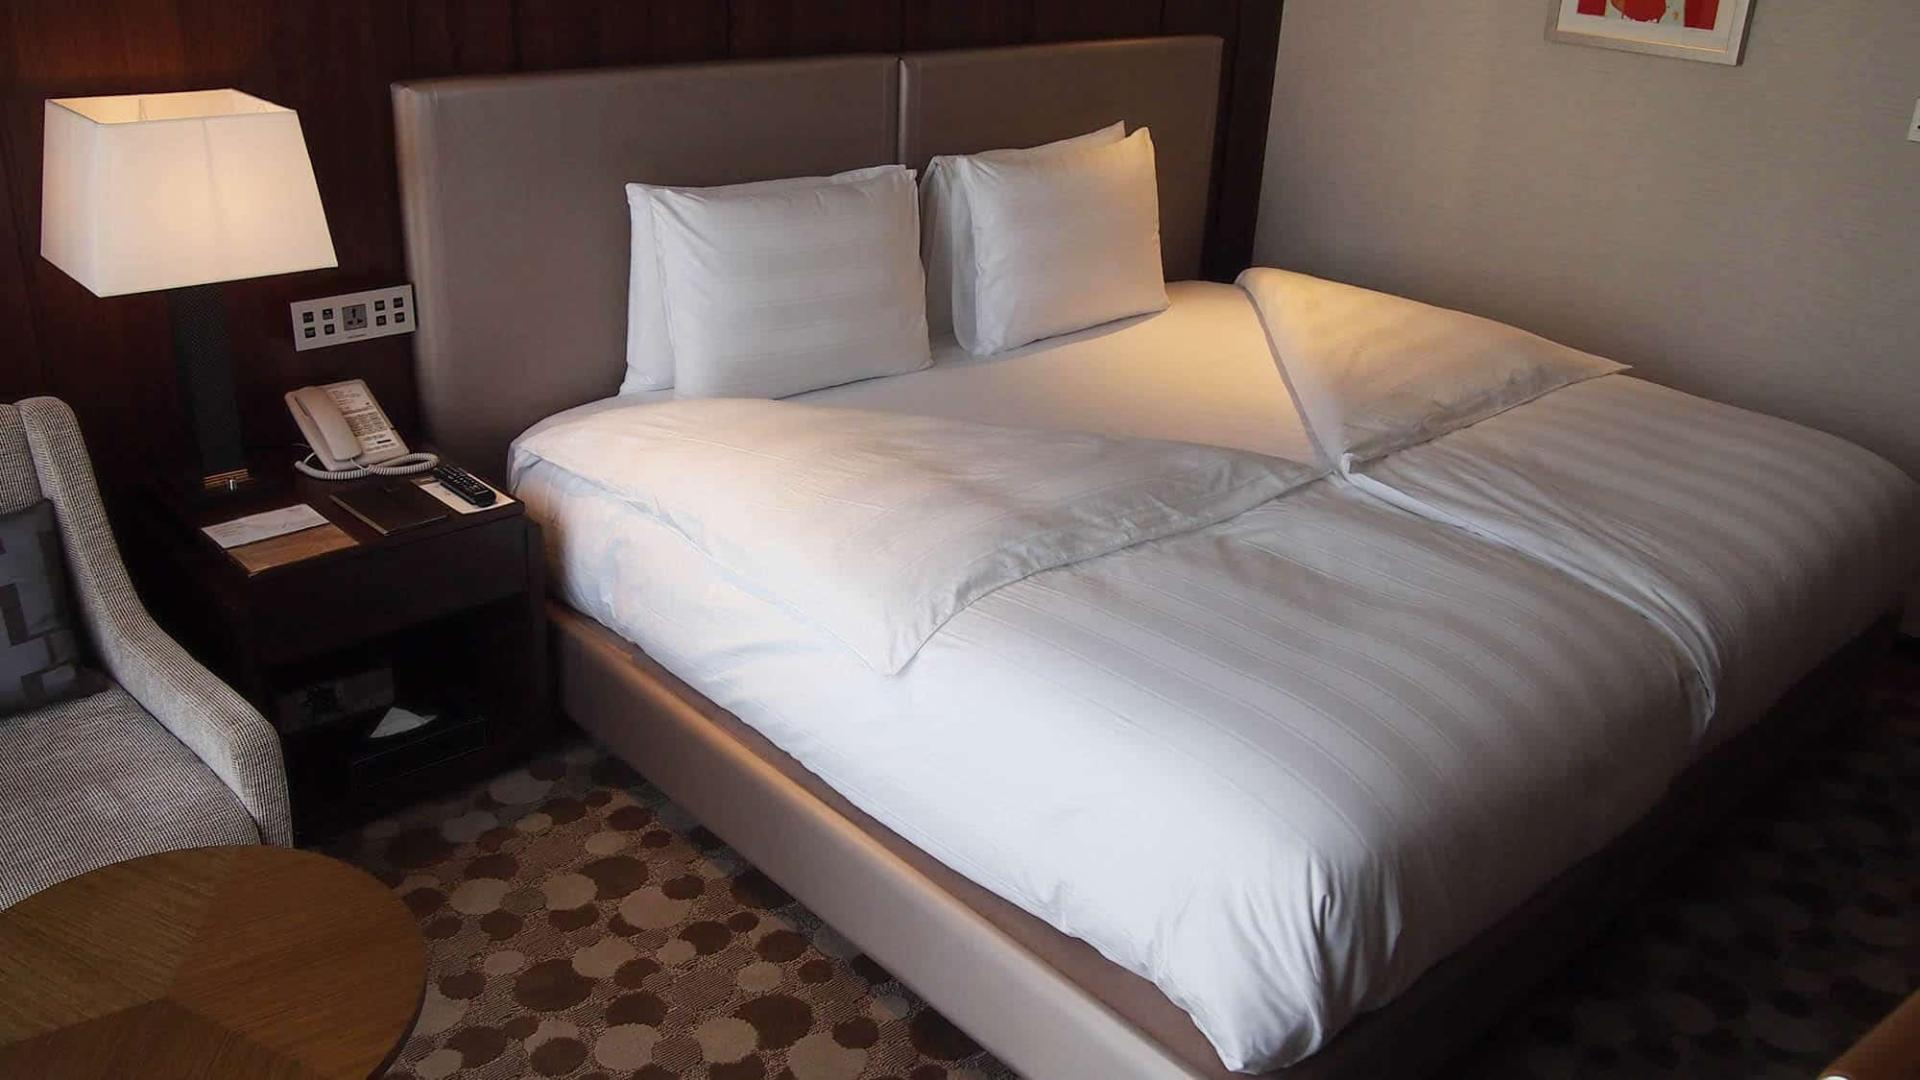 Lotte City Hotel Daejeon - Rooms - Standard - Hollywood Double Room